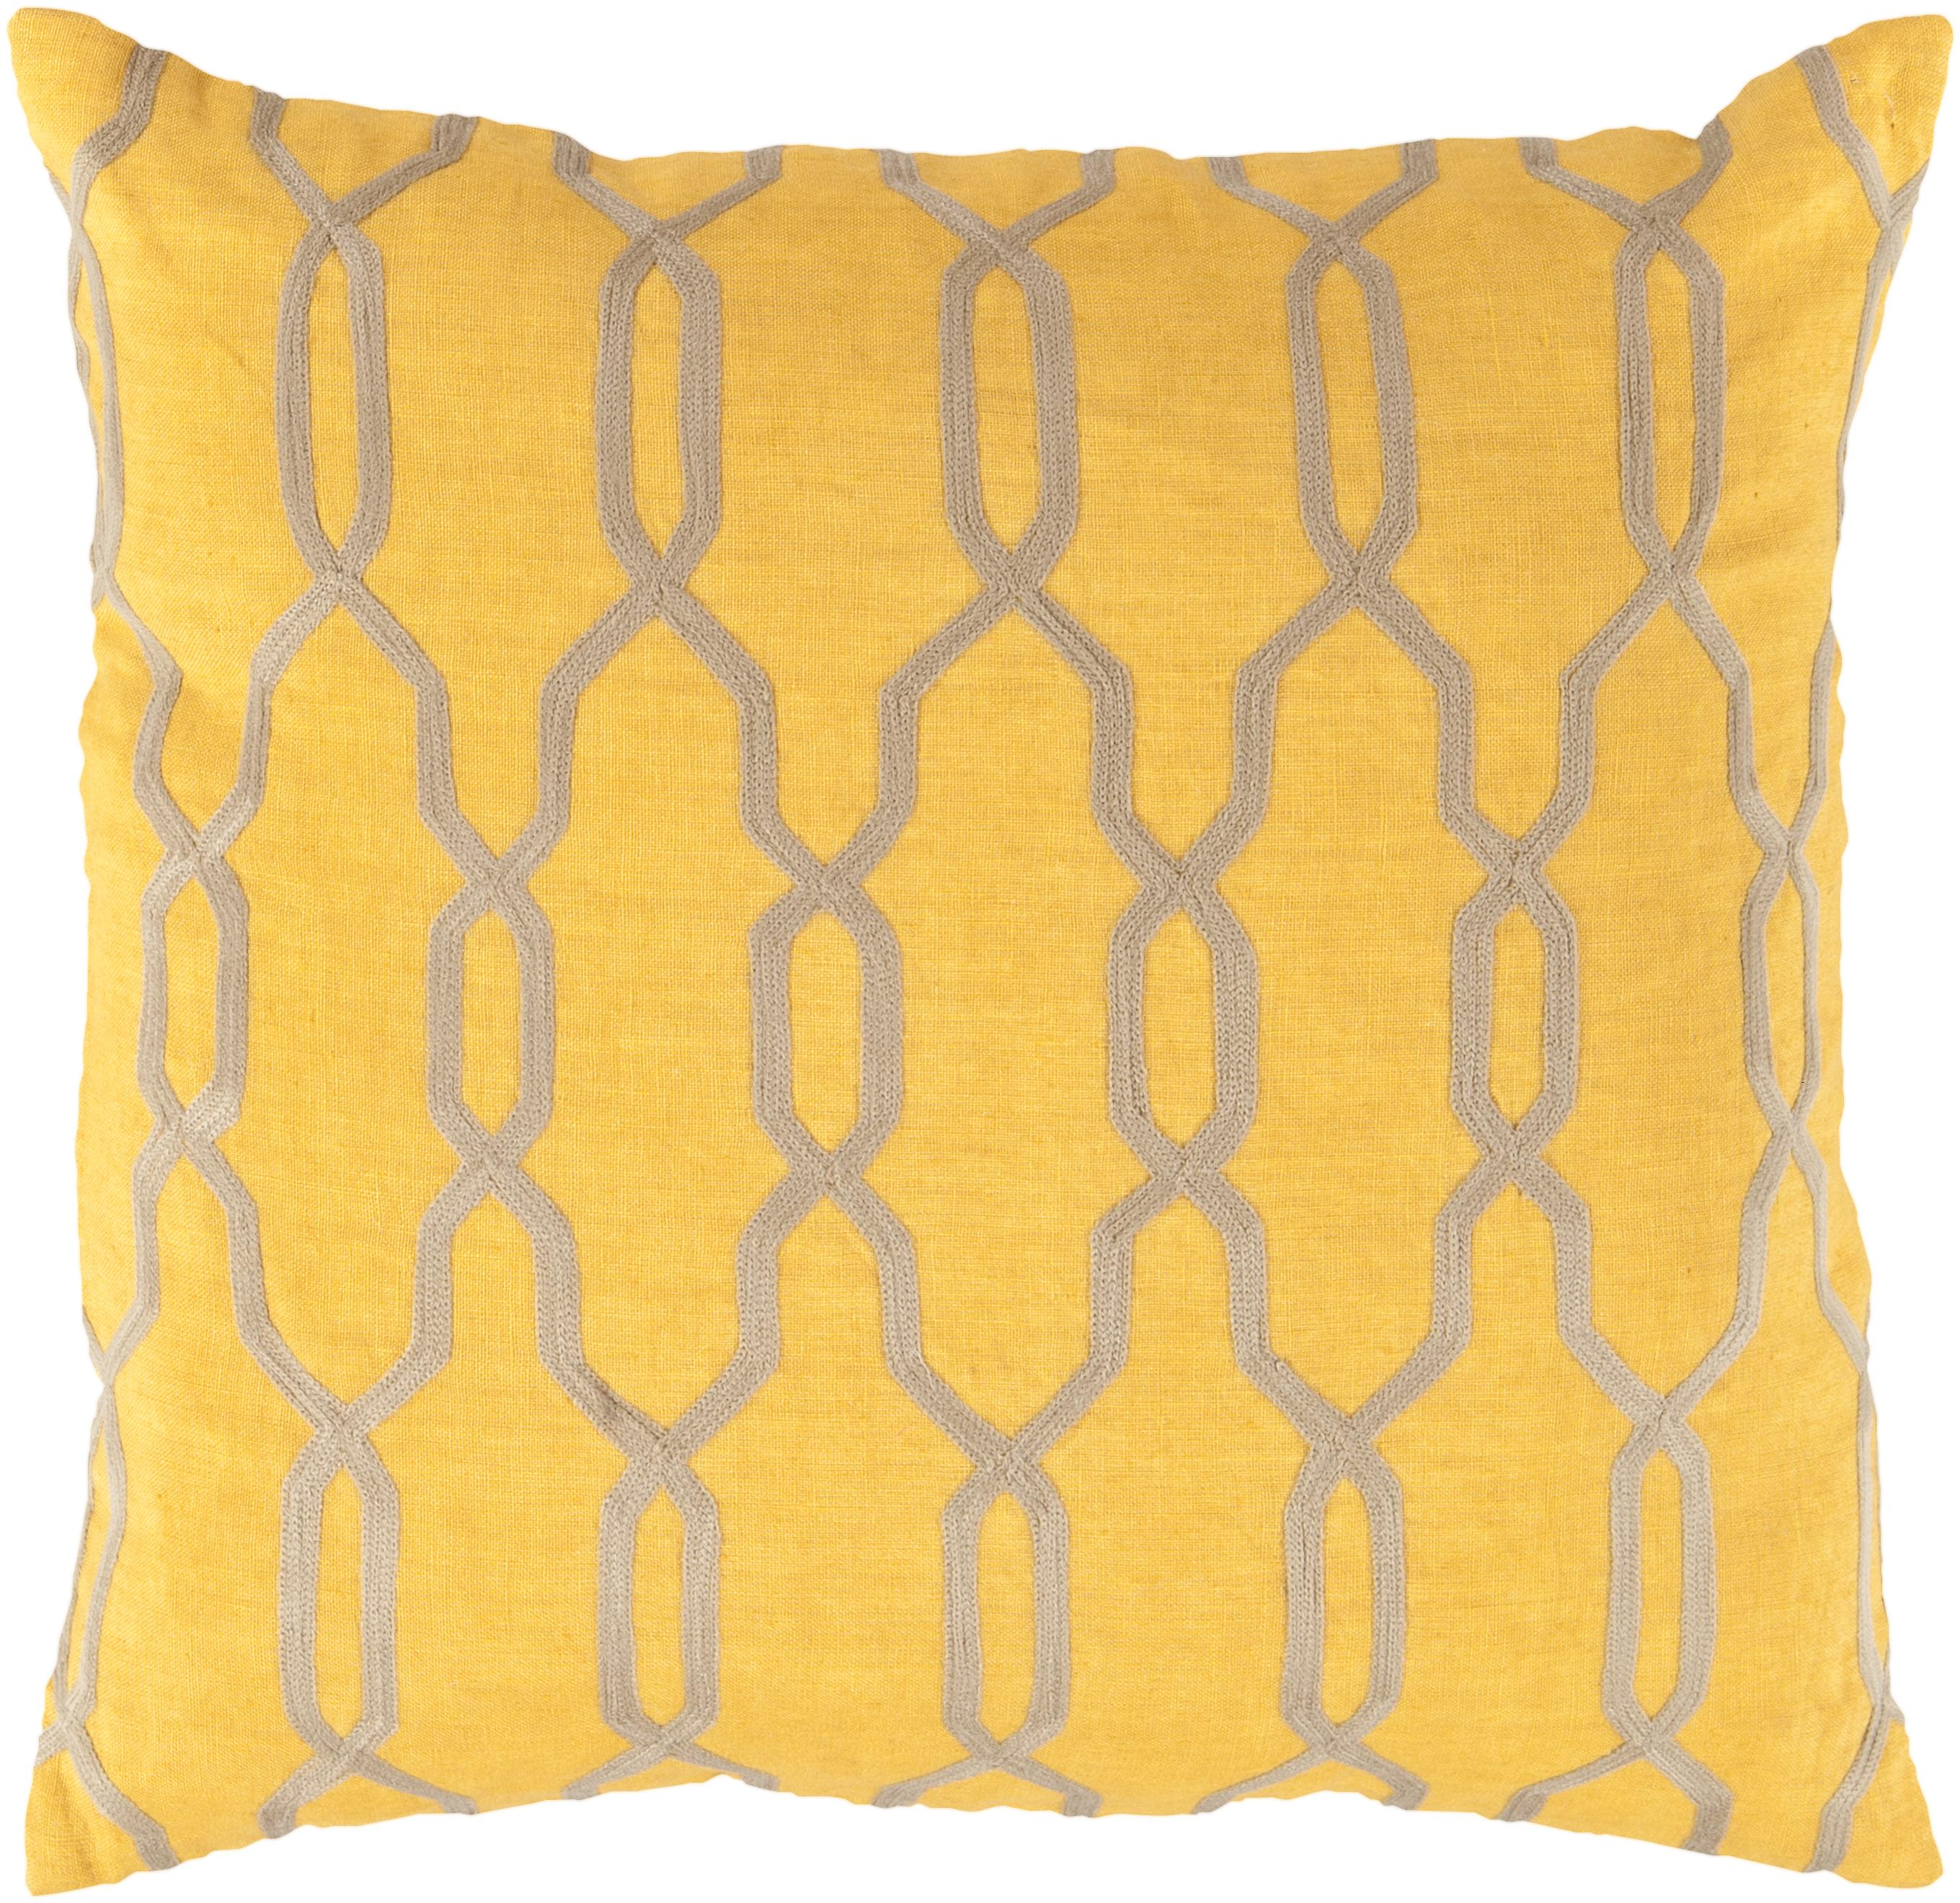 "Surya Pillows 18"" x 18"" Pillow - Item Number: COM004-1818P"